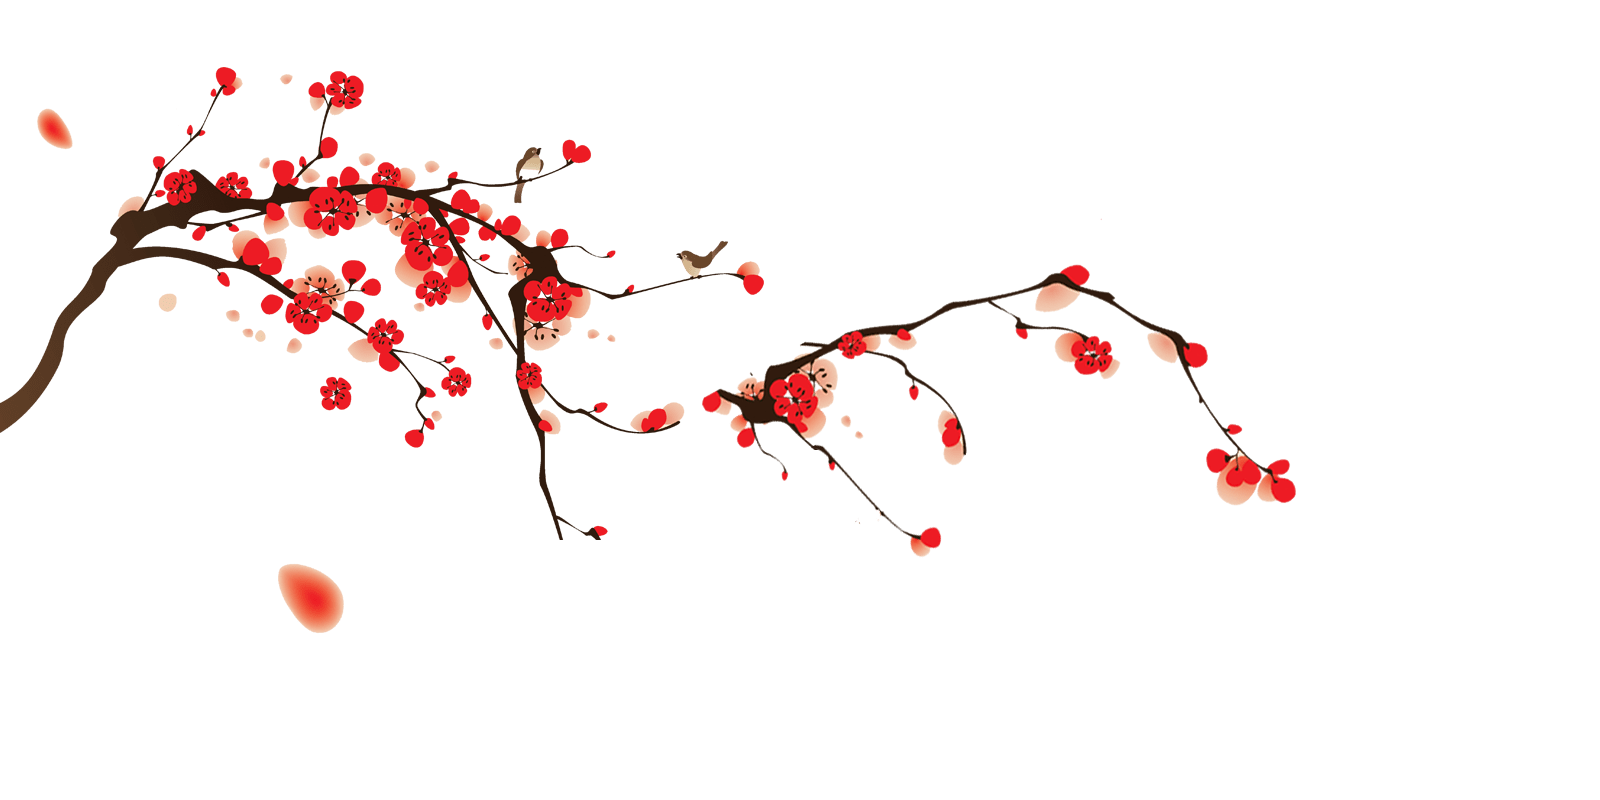 Falling Cherry Blossoms Wallpaper きまぐれ